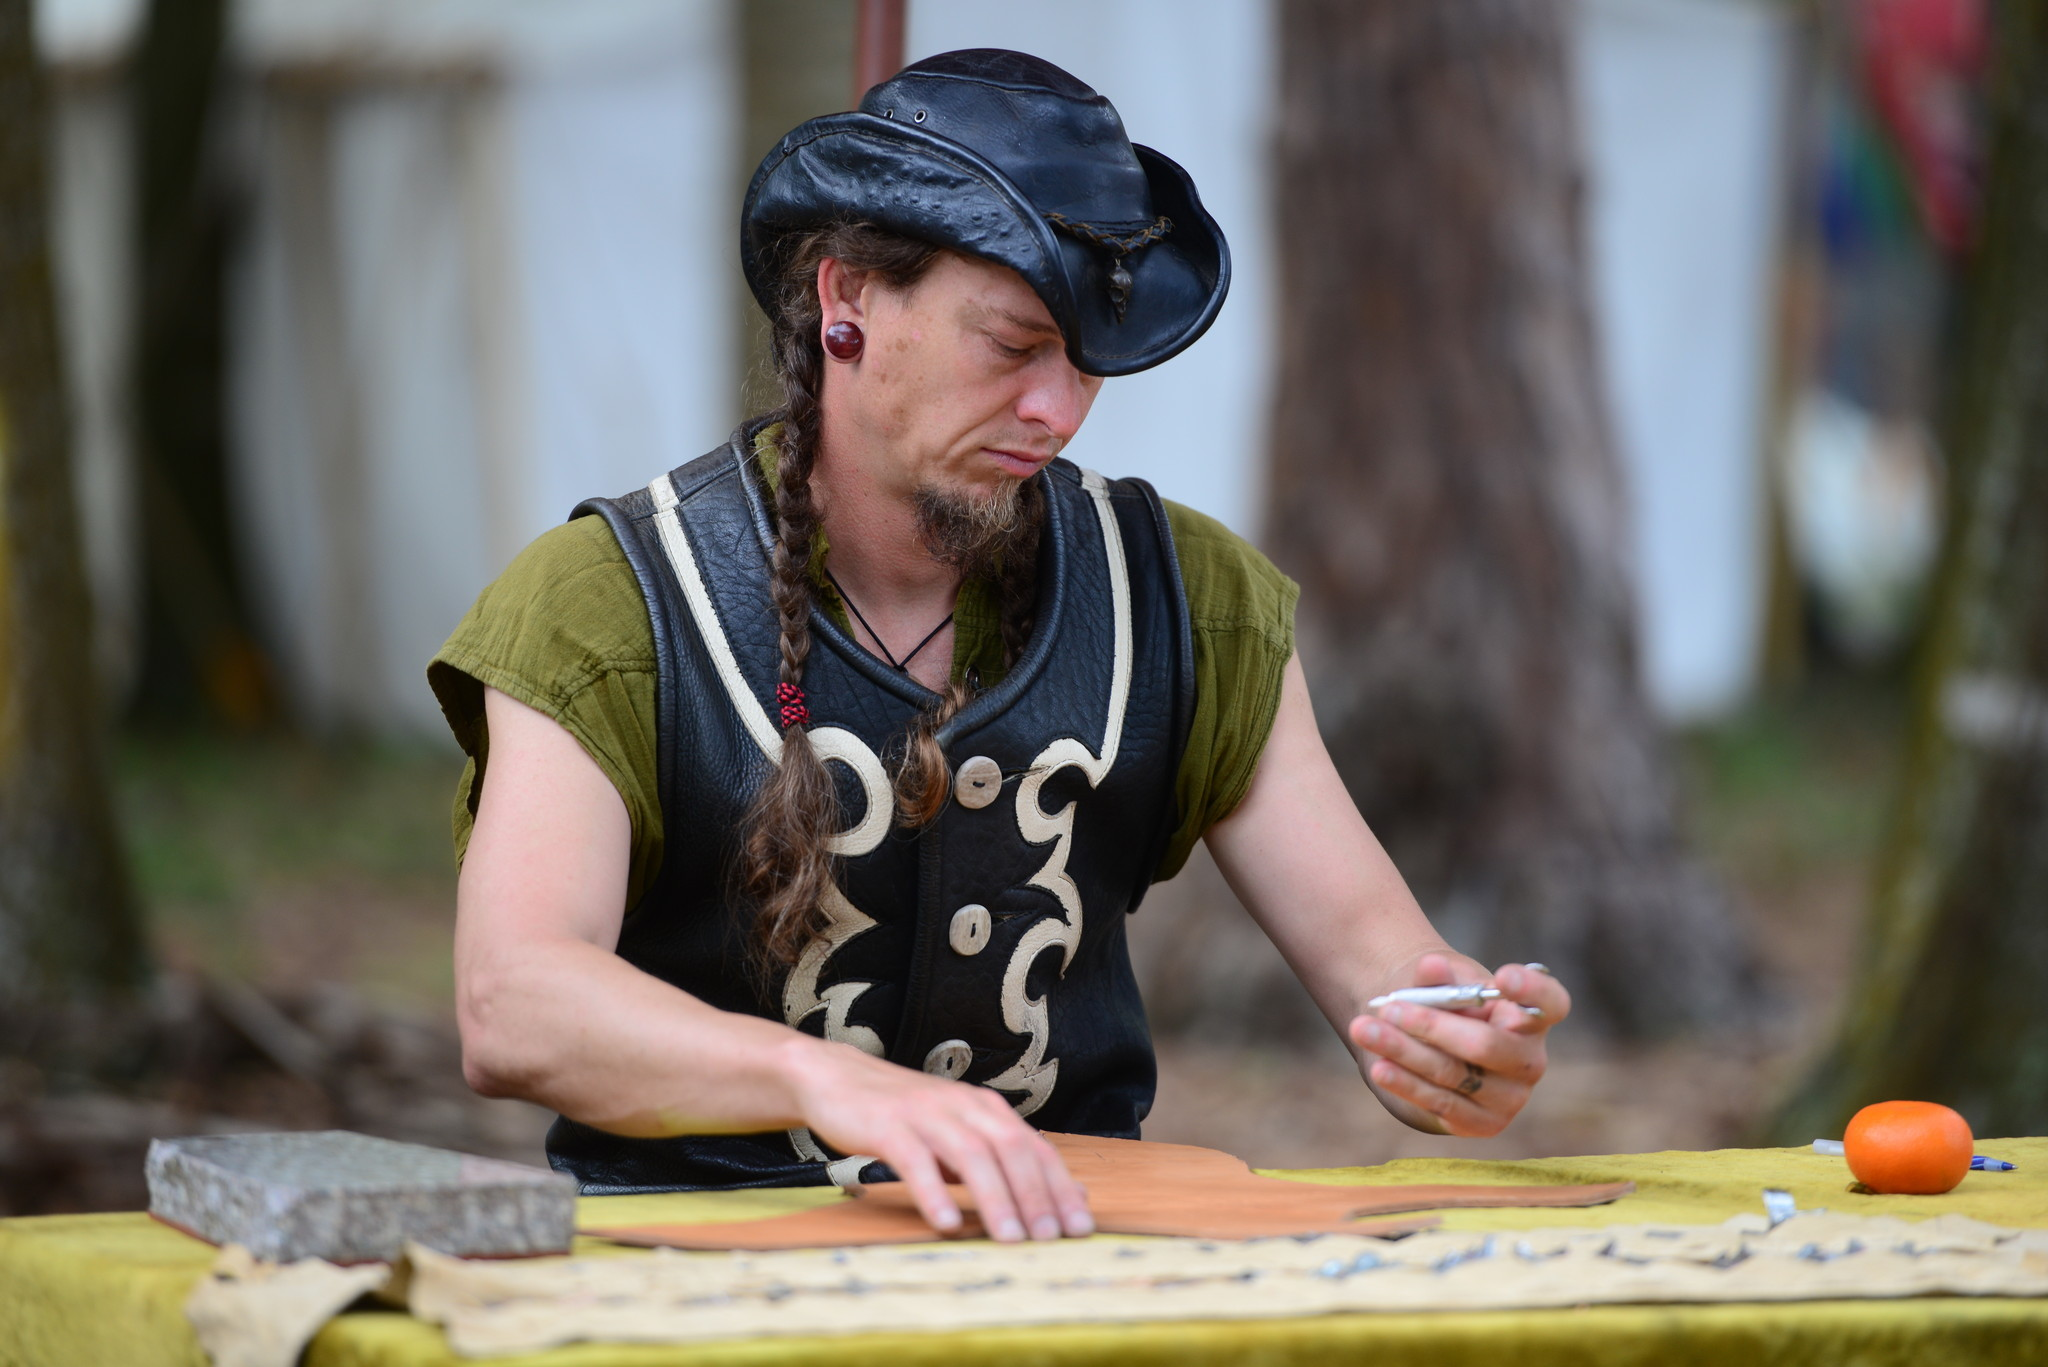 Renaissance Festival photos - Guy Harris